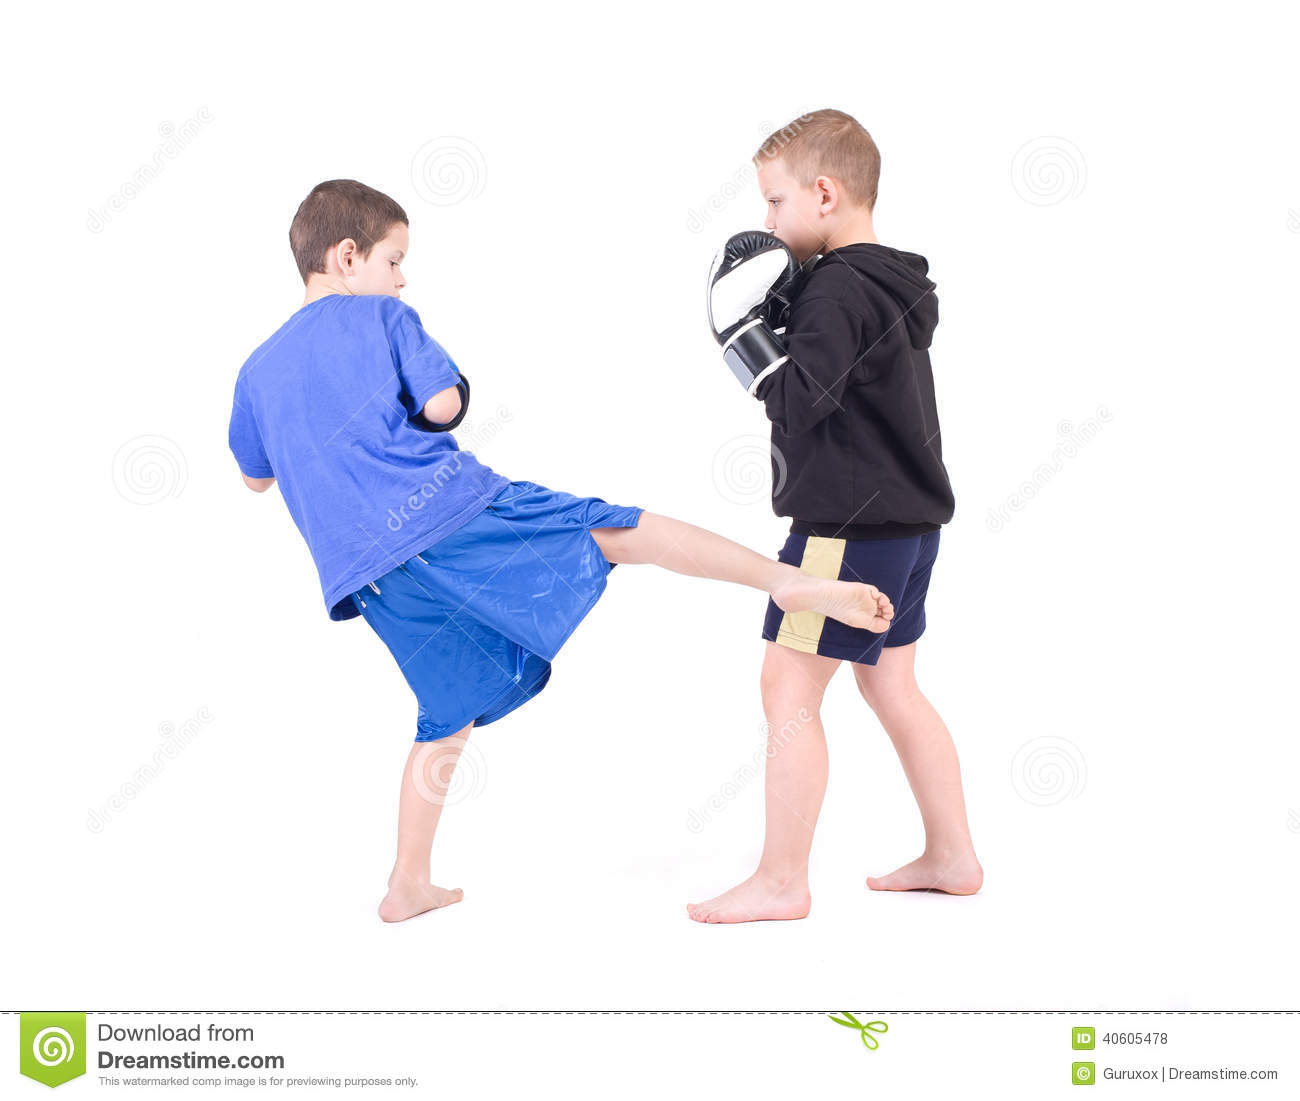 Kids Kickboxing Fight Stock Photo - Image: 40605478